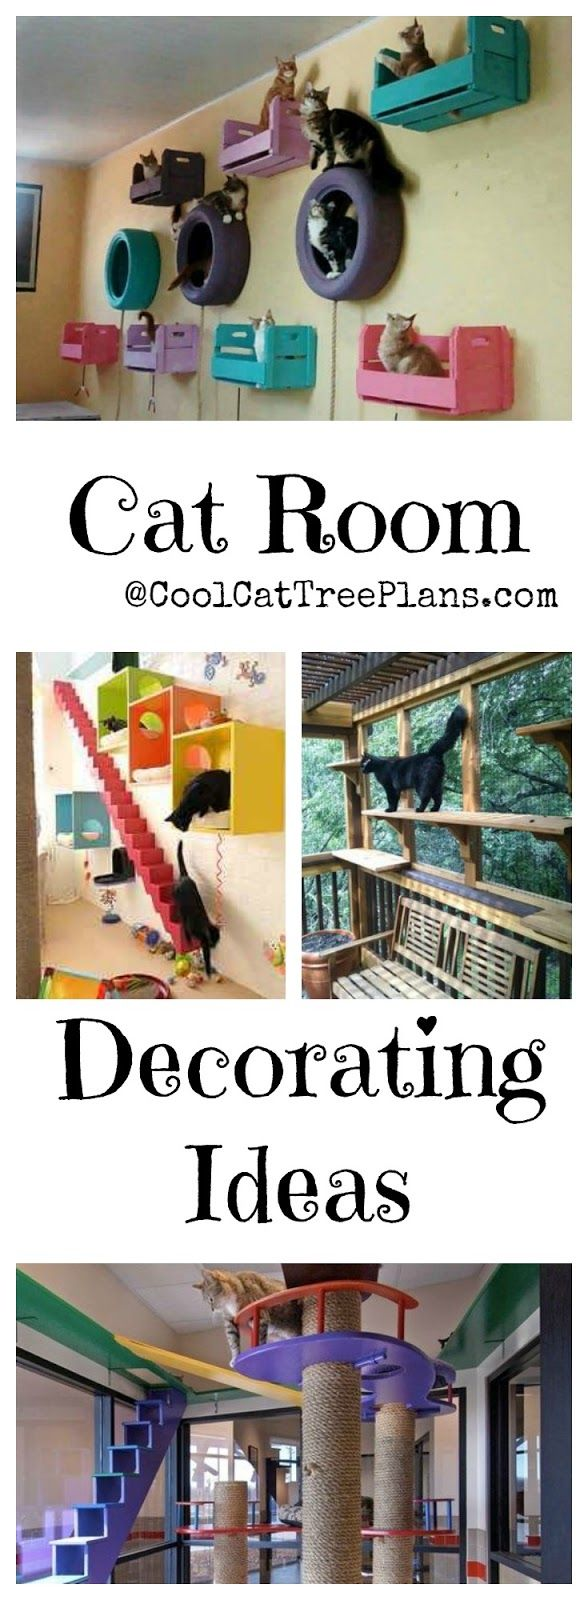 Cat Room Ideas. DIY cat decor for small spaces, appartmens and homes of all sizes.